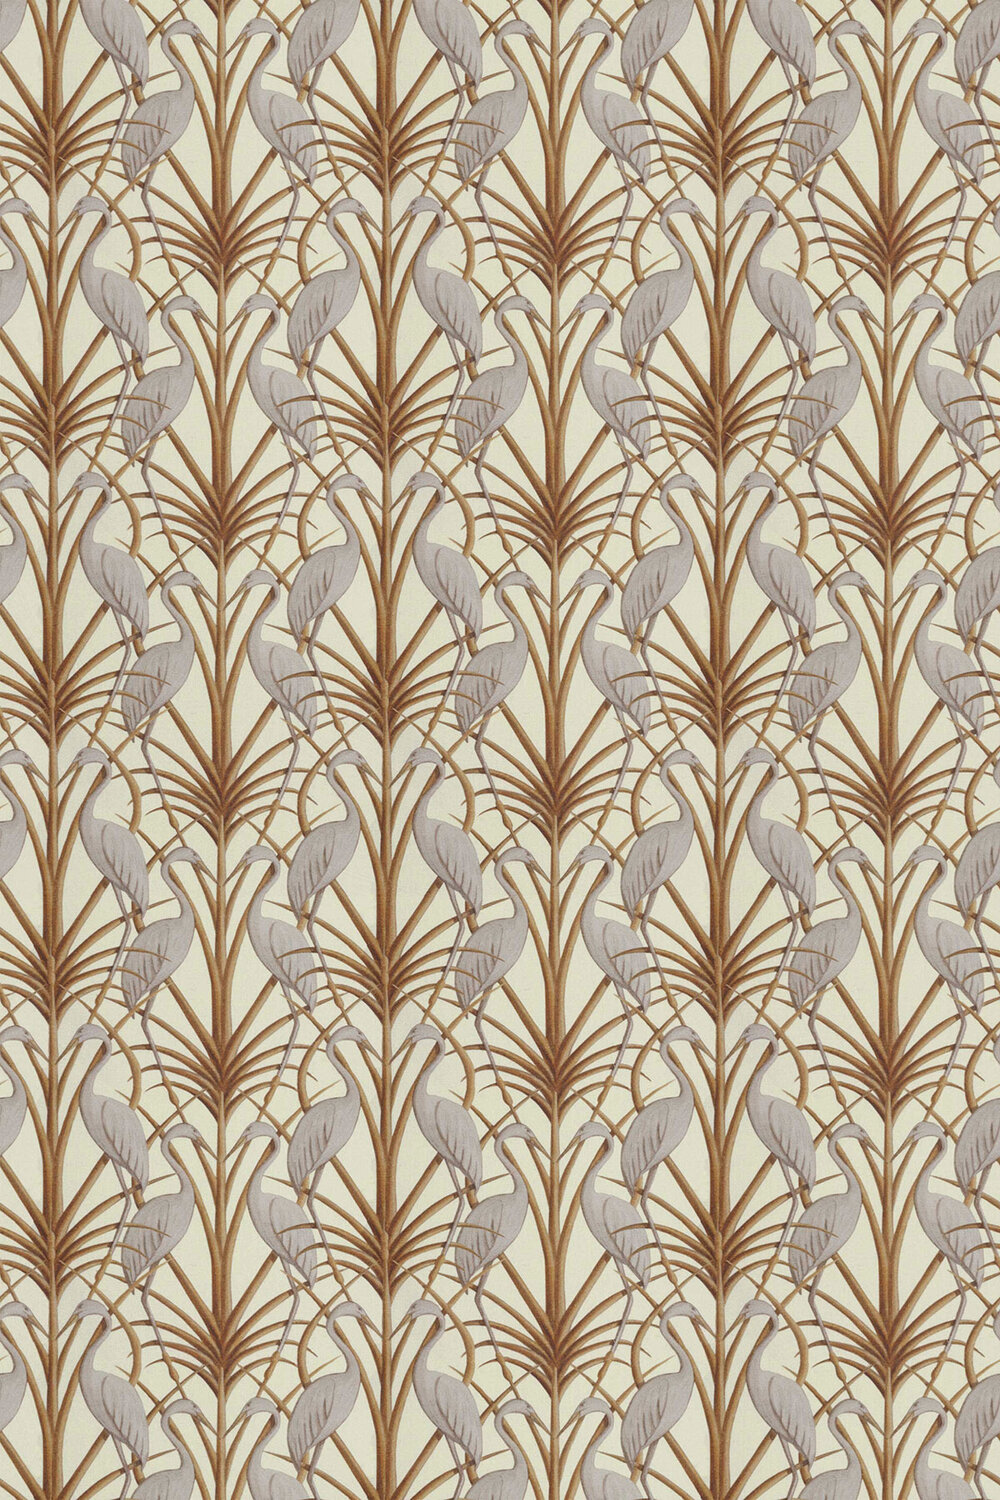 Nouveau Heron Fabric - Cream - by The Chateau by Angel Strawbridge